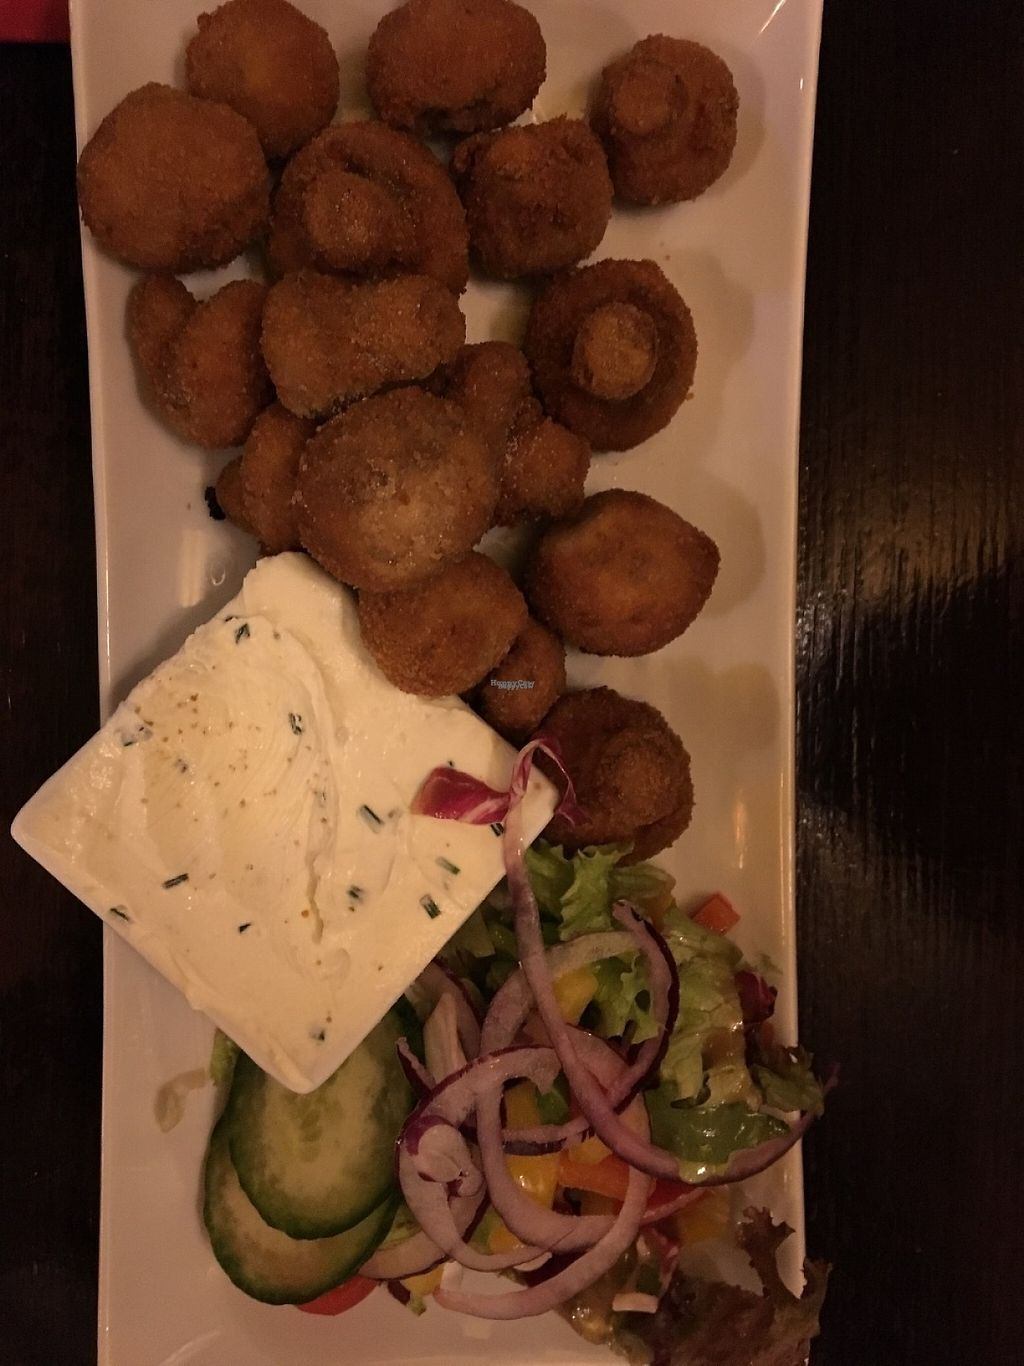 """Photo of Finnegan's Irish Pub  by <a href=""""/members/profile/tcsengusz"""">tcsengusz</a> <br/>Deep fried mushrooms w/ fresh salad <br/> January 13, 2017  - <a href='/contact/abuse/image/85521/211758'>Report</a>"""